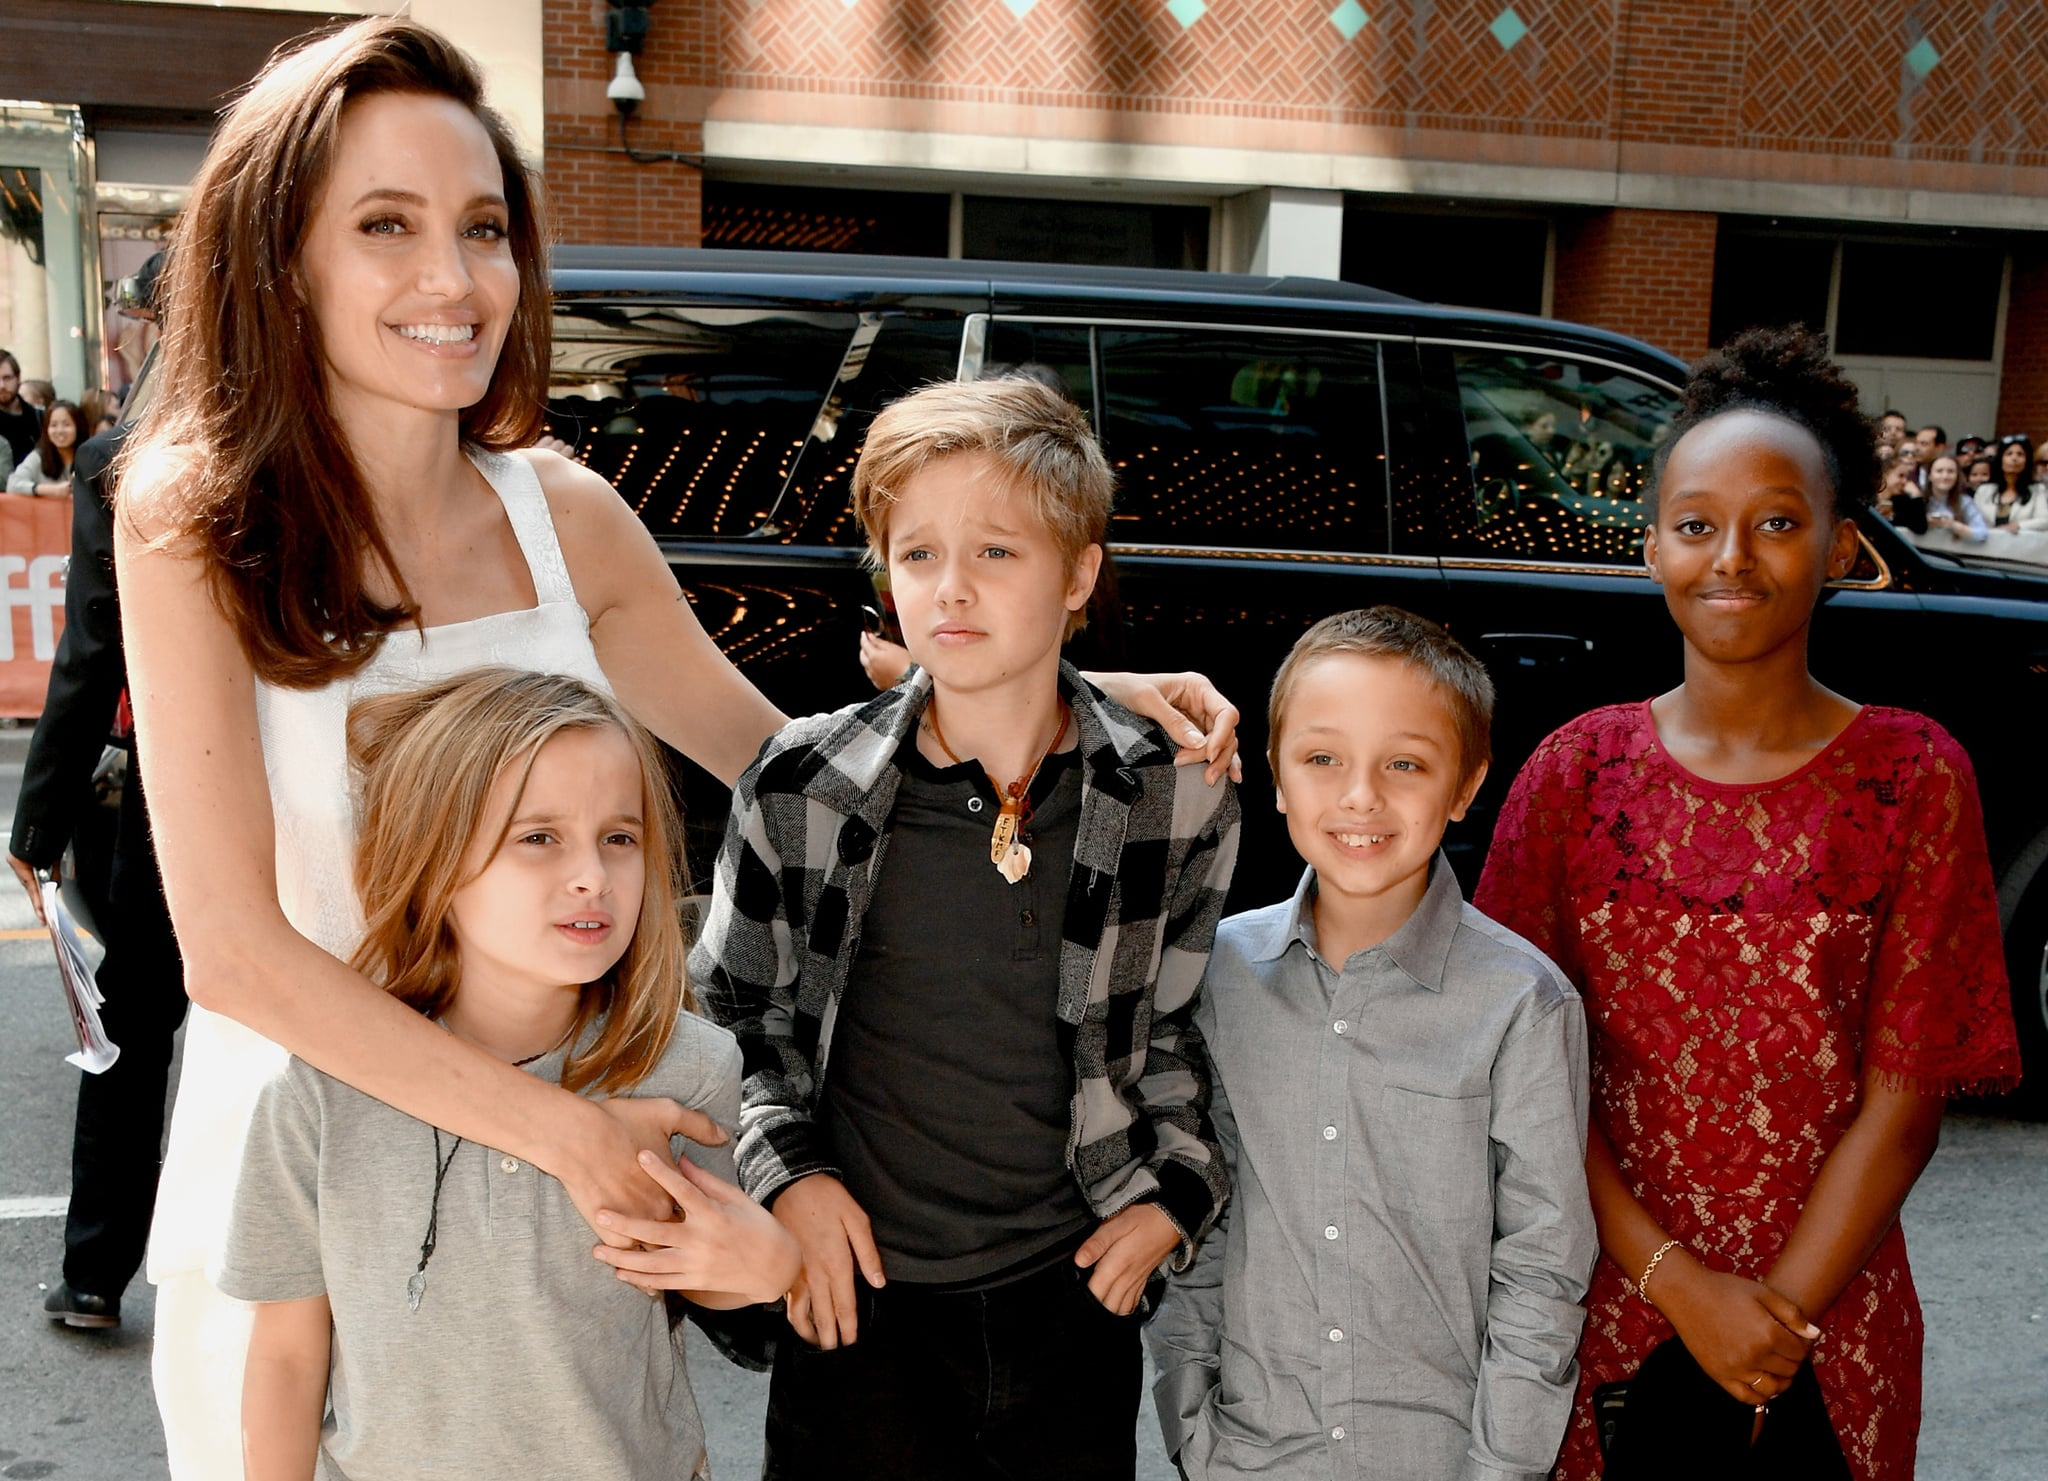 how old are brad pitt and angelina jolies kids